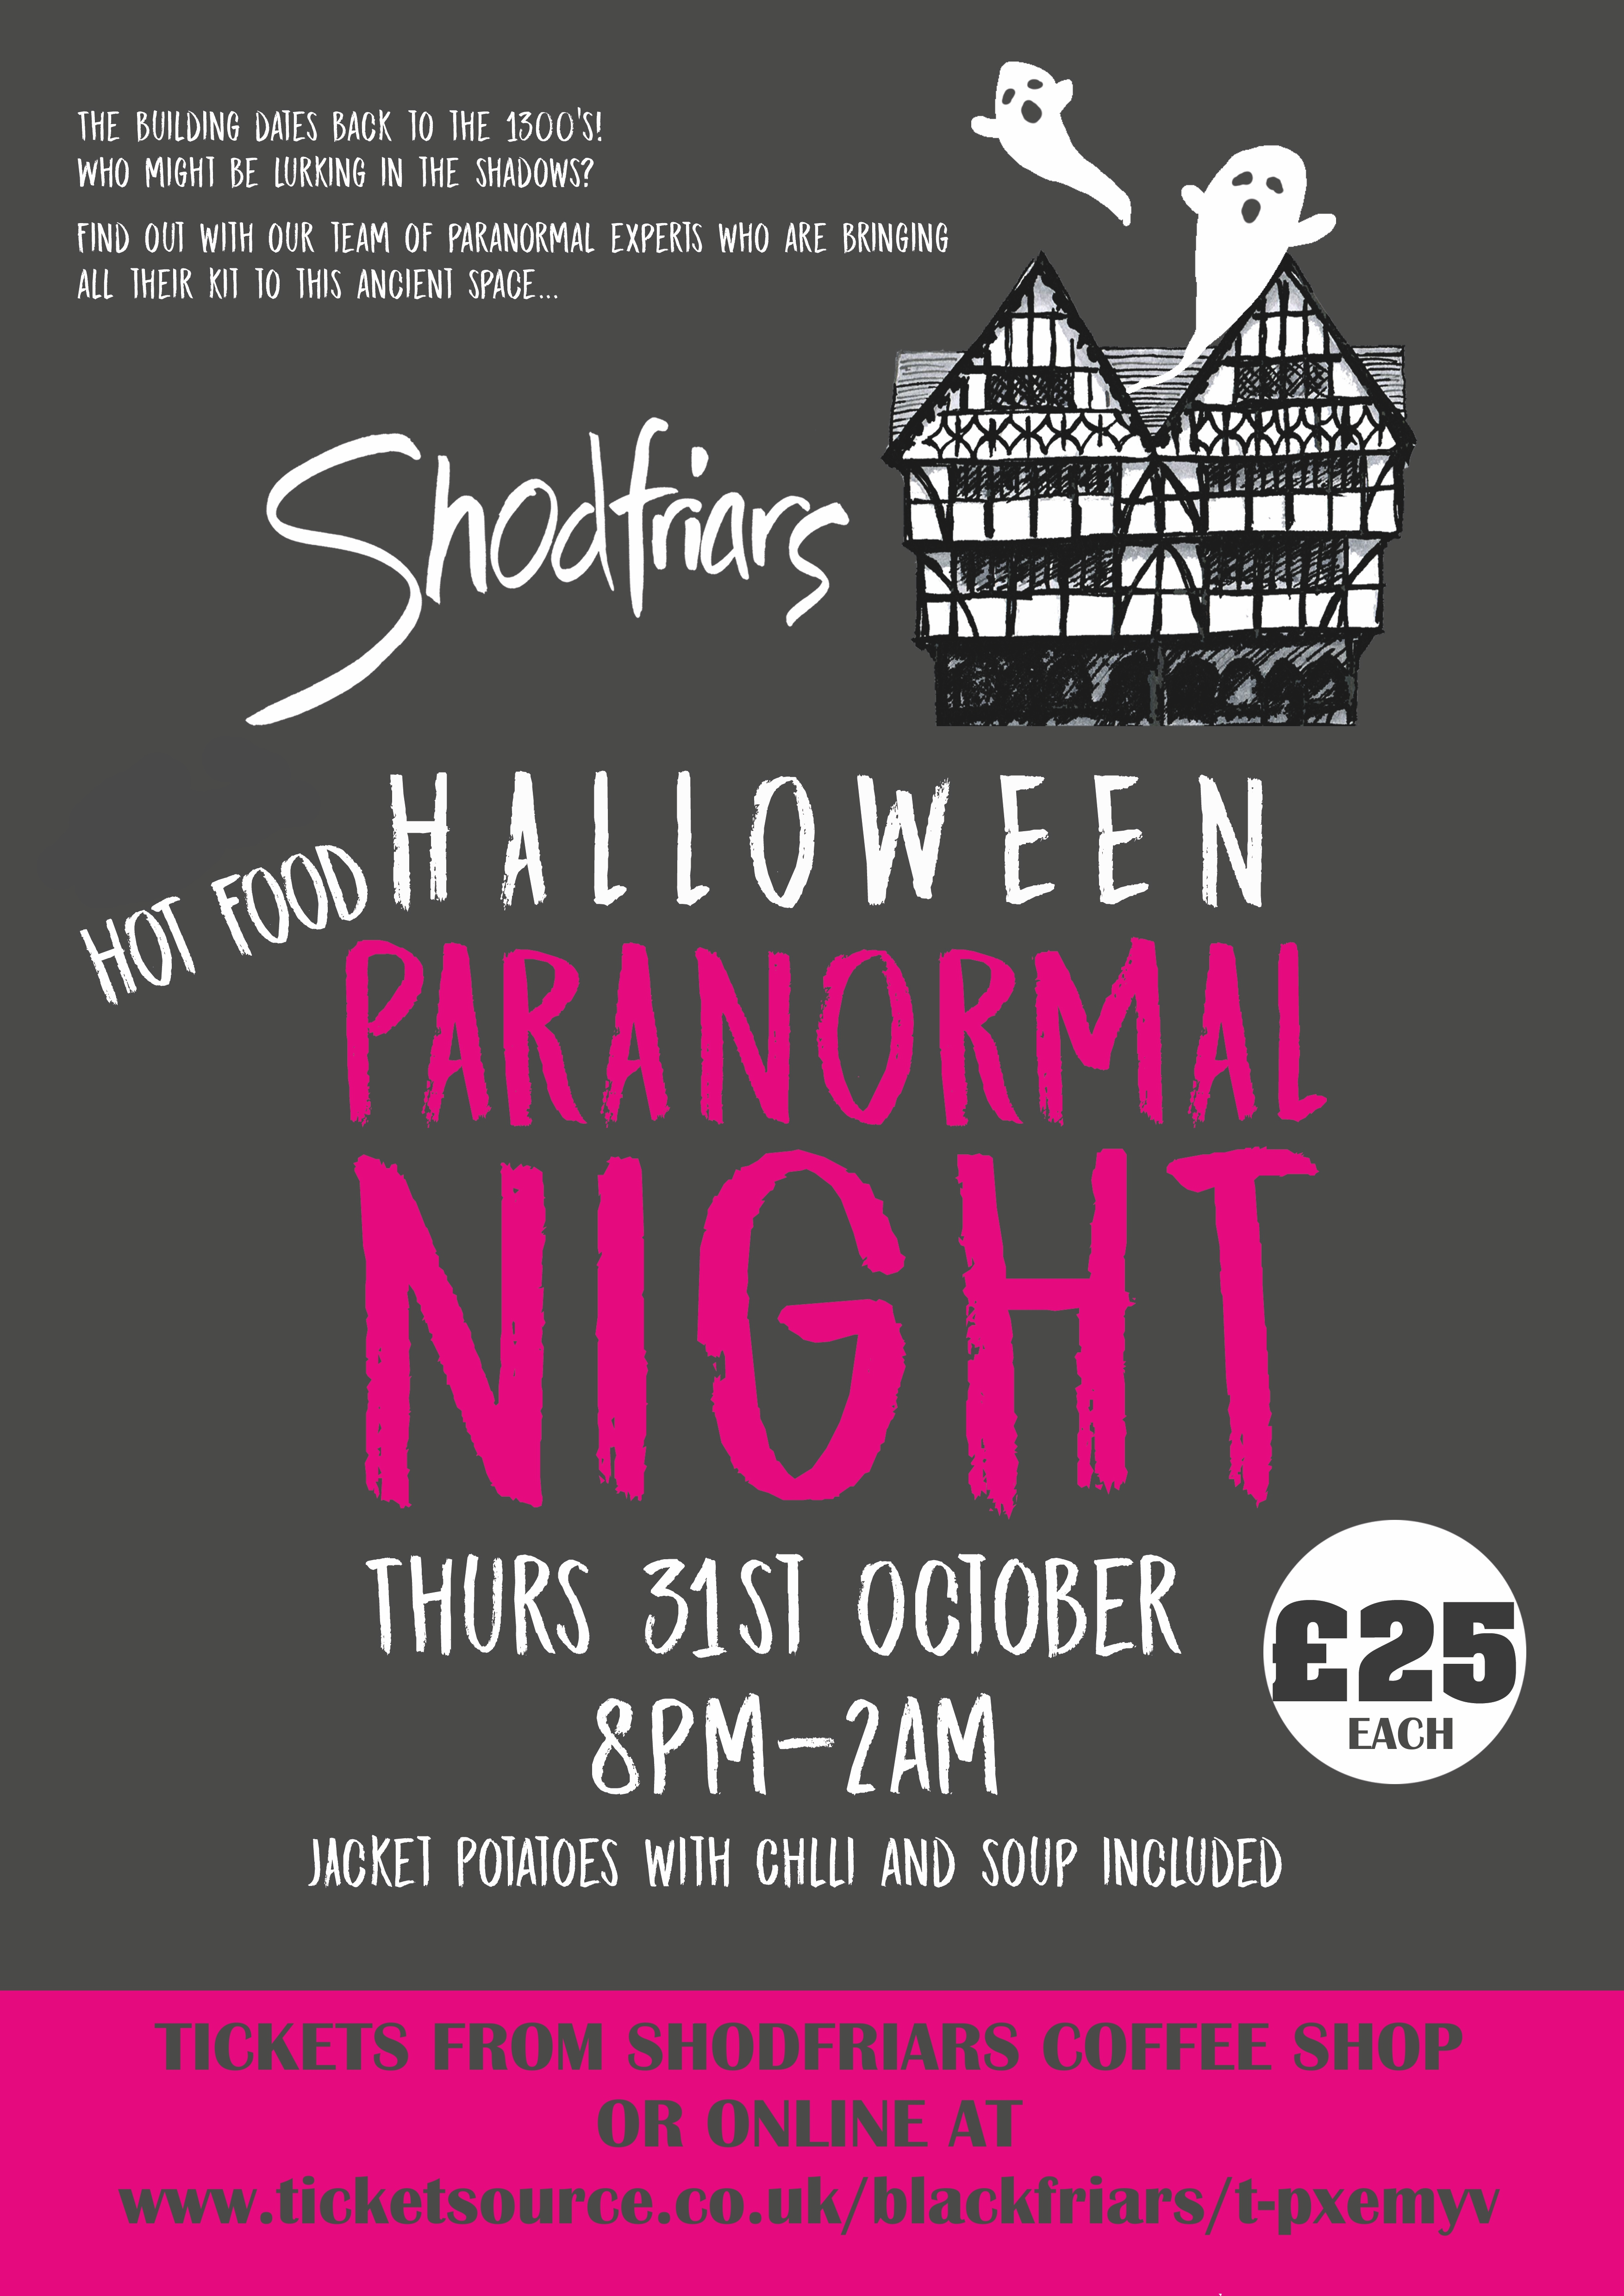 Halloween Paranormal Night at Shodfriars Hall 31st October